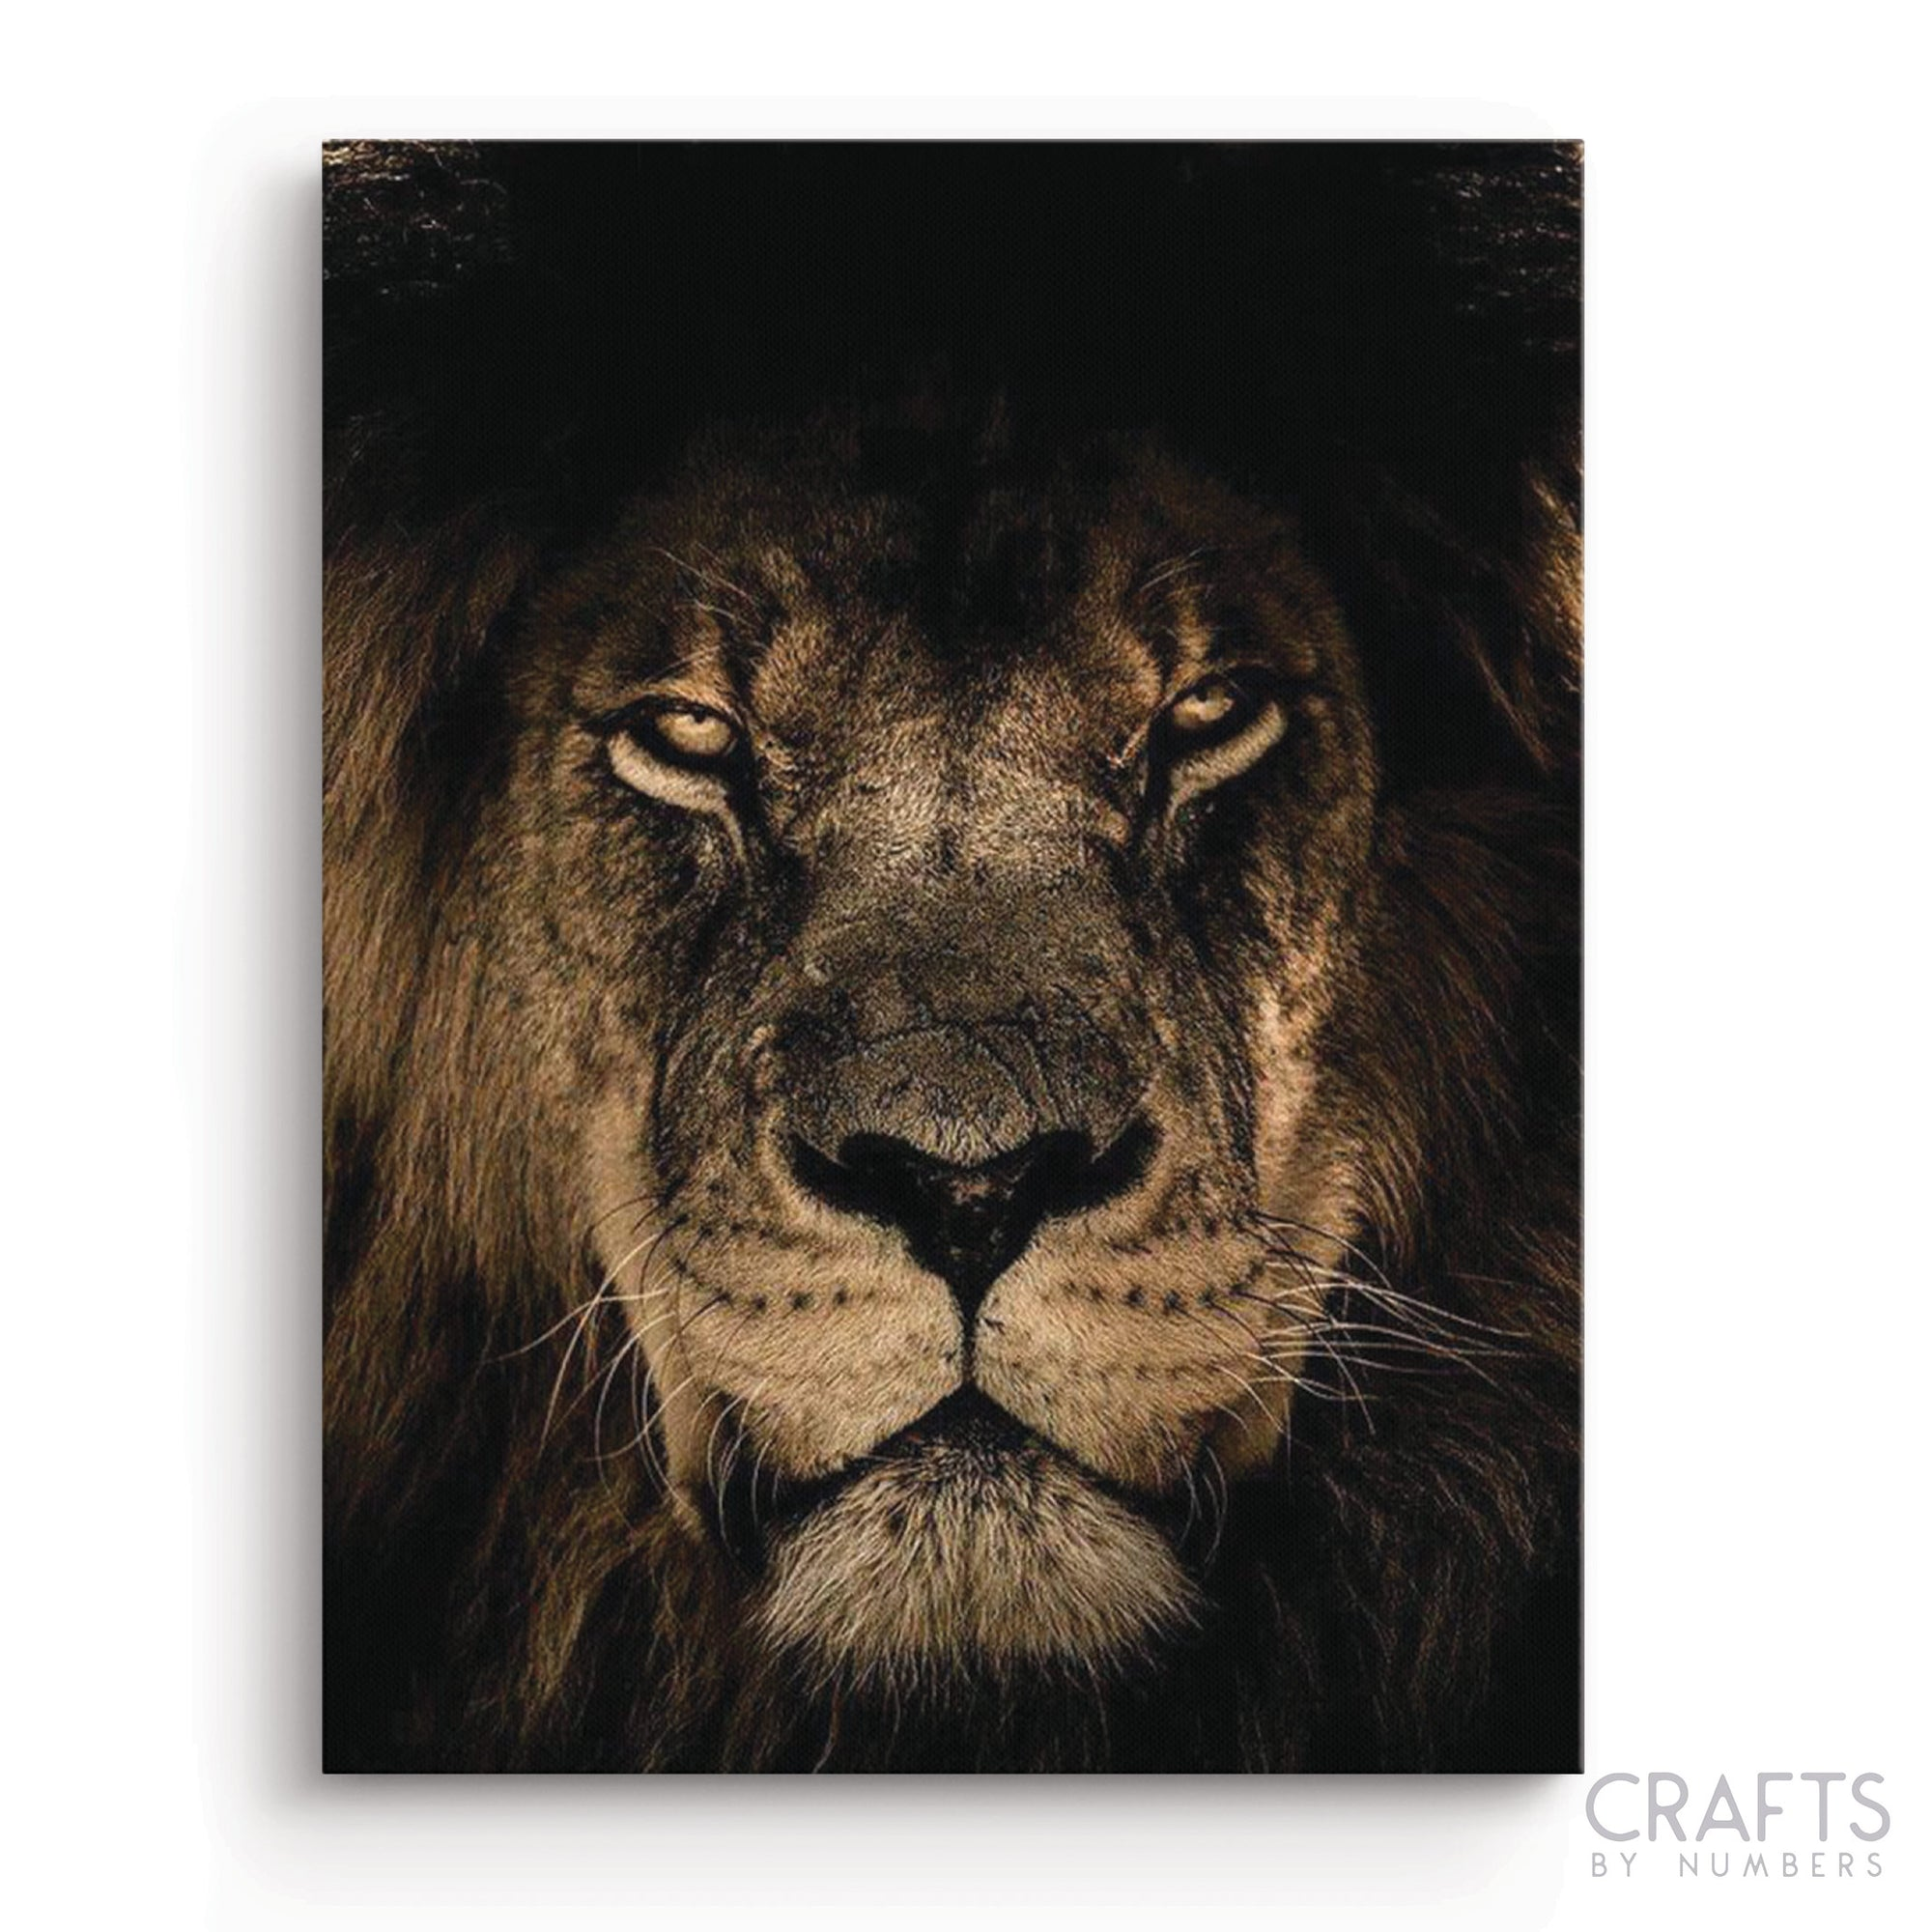 Golden Lion King paint by numbers canvas for adults from paint pots